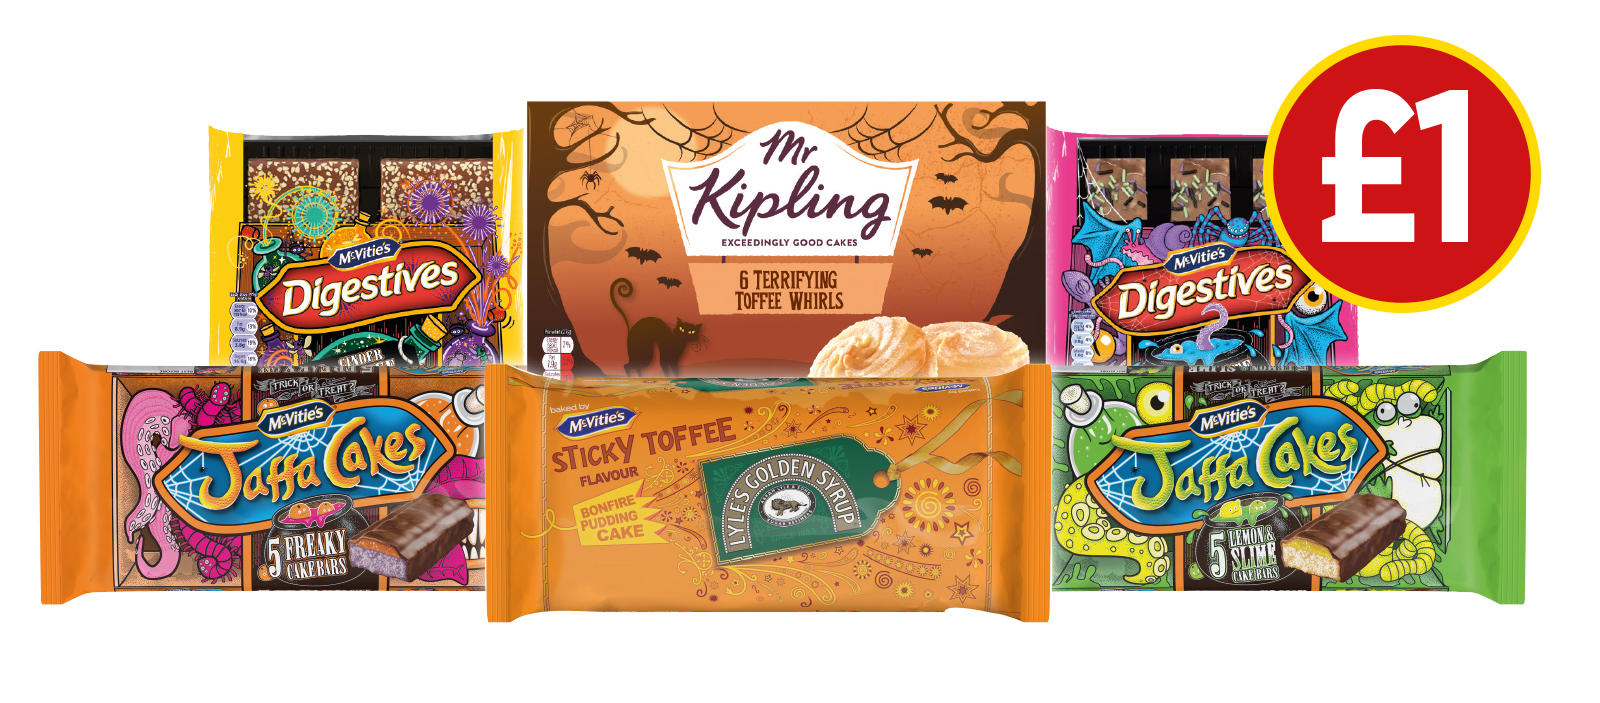 £1 HALLOWEEN DEALS: Mr Kipling Toffee Terror Whirls, Jaffa Cakes Freaky Cake Bars, Jaffa Cakes Lemon & Slime Cake Bars, Lyles Golden Syrup Bonfire Pudding Cake, Digestives Chocolate Beastly Bited, Digestives Cinder Toffee Toffin - £1 at Budgens